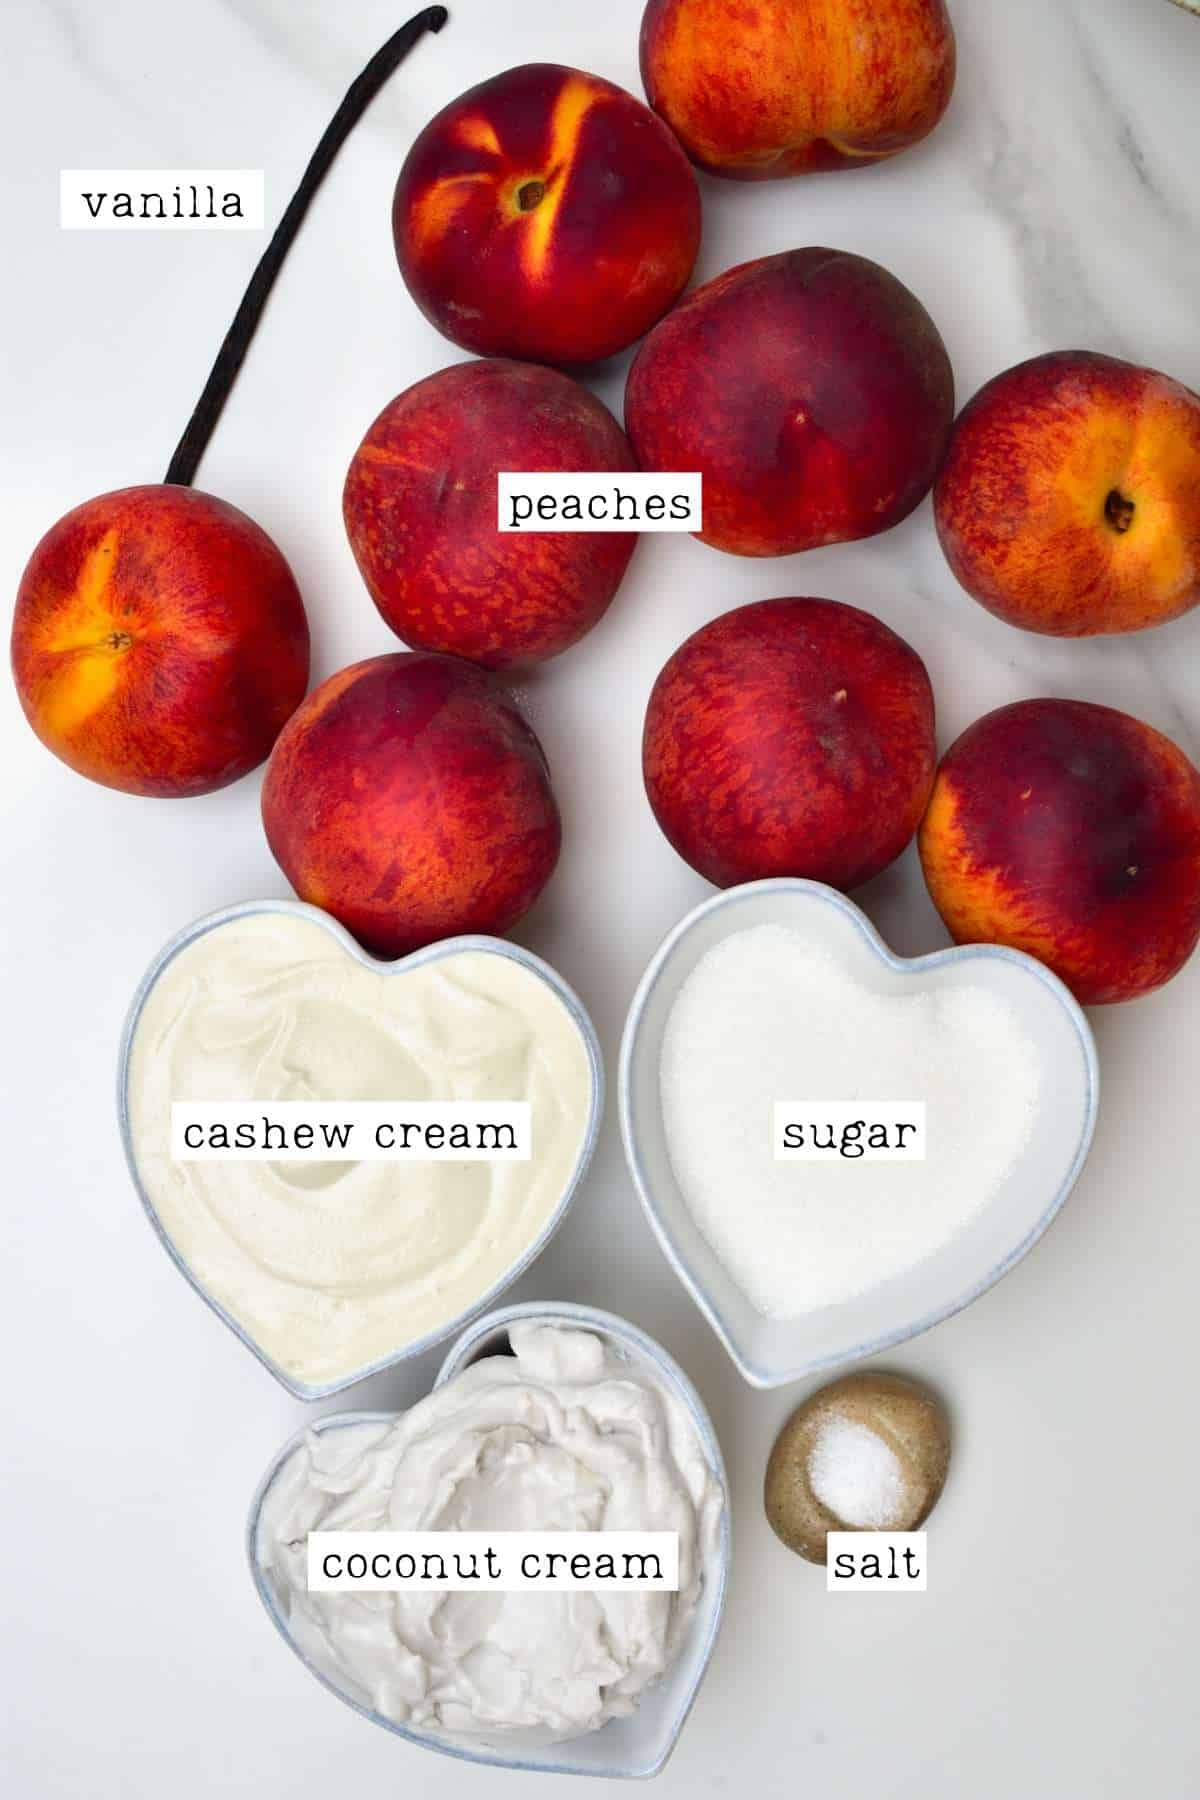 Ingredients for peach ice cream